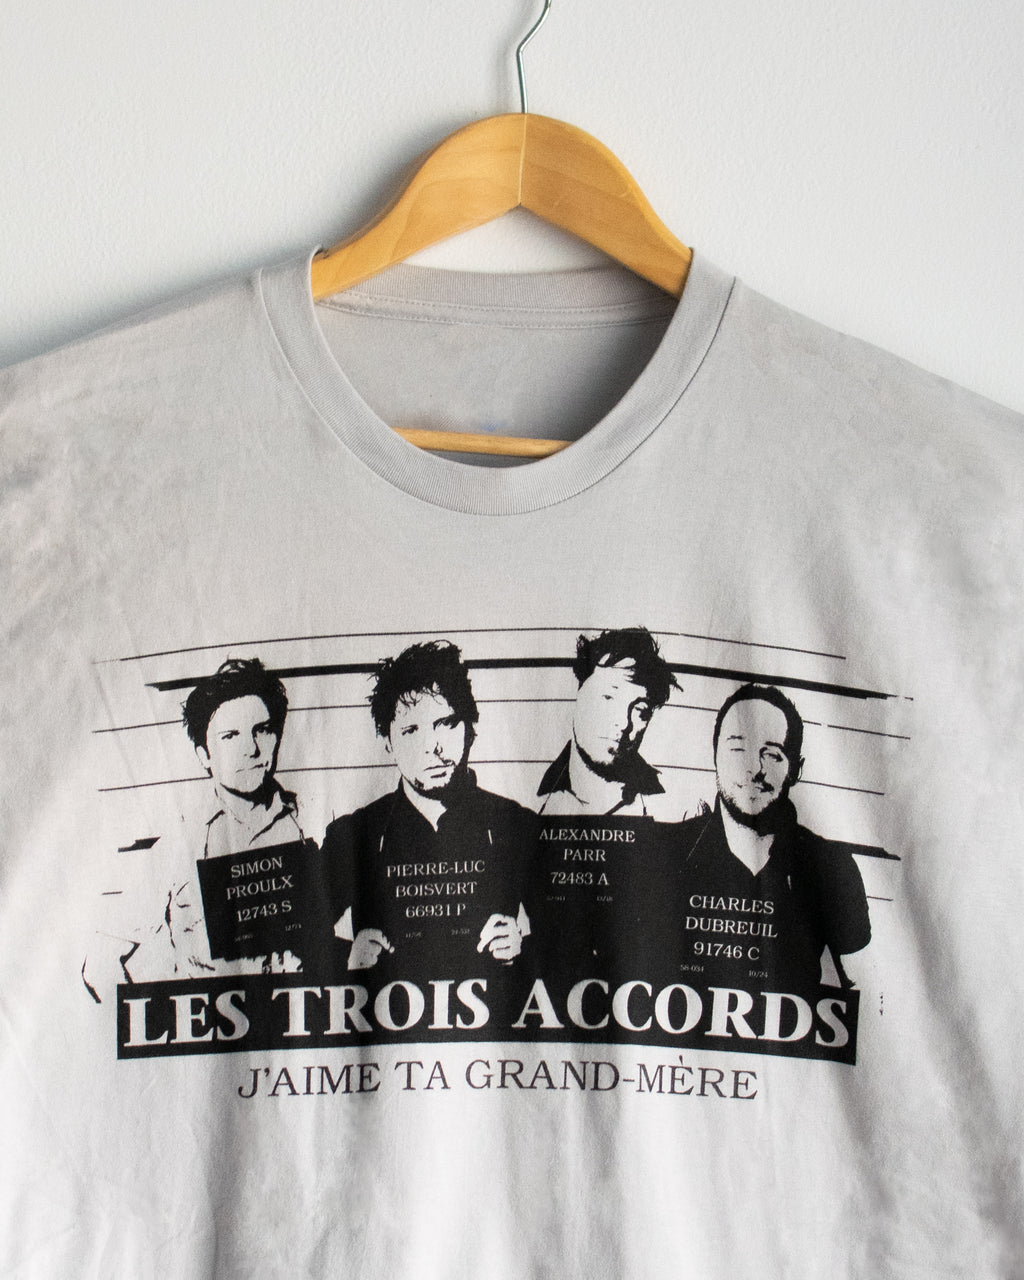 T-SHIRT - Les Trois Accords - JTGM - Horizontal